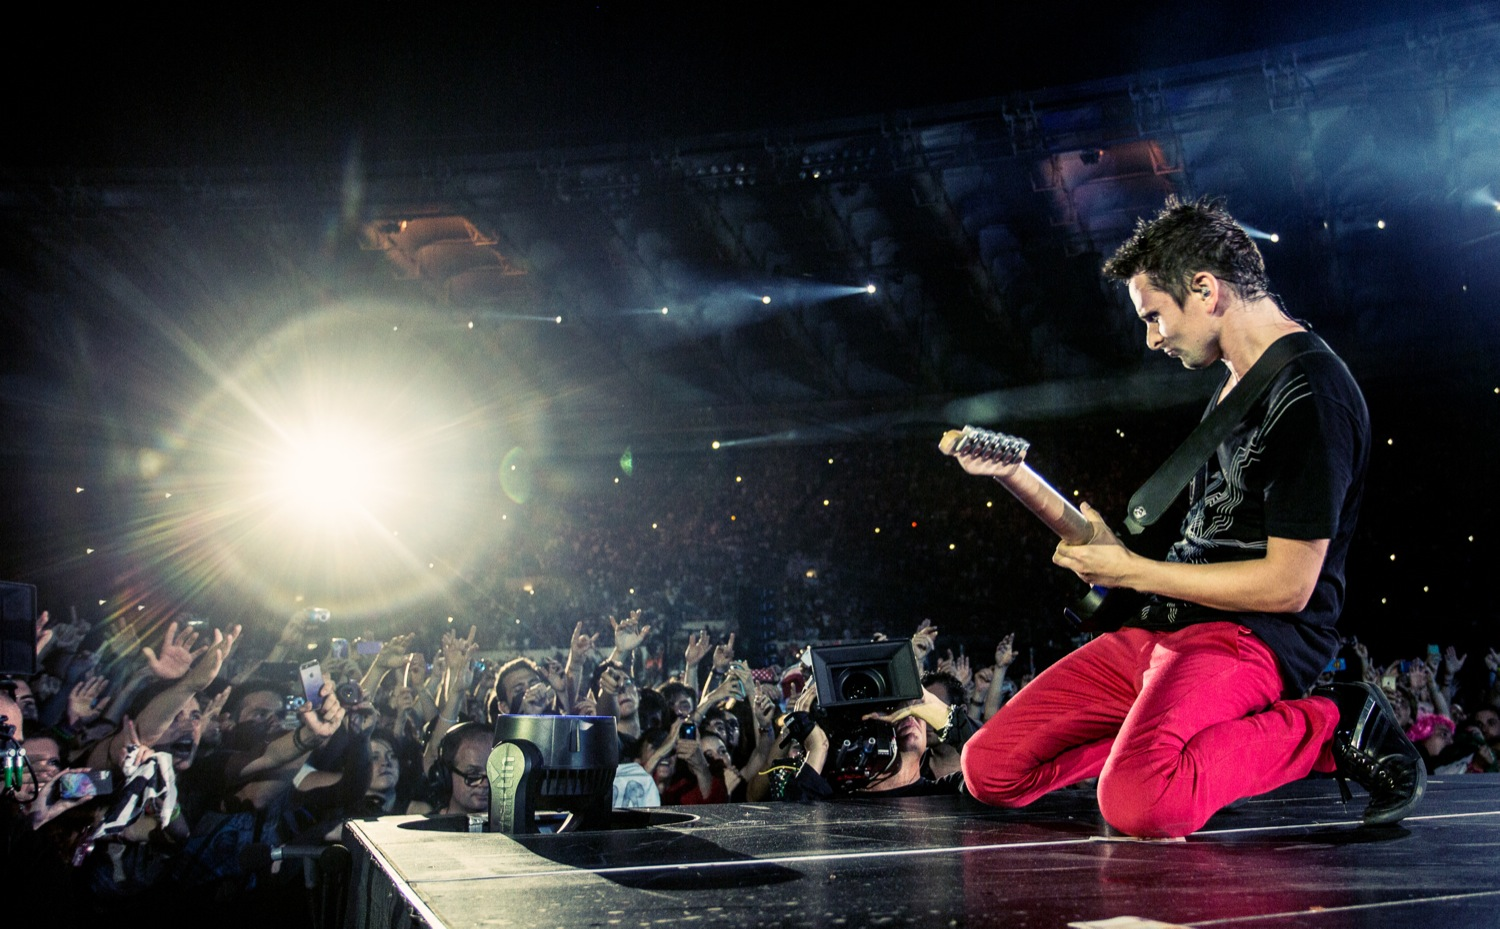 MUSE : FILM_Muse - Live At Rome Olympic Stadium (2013)